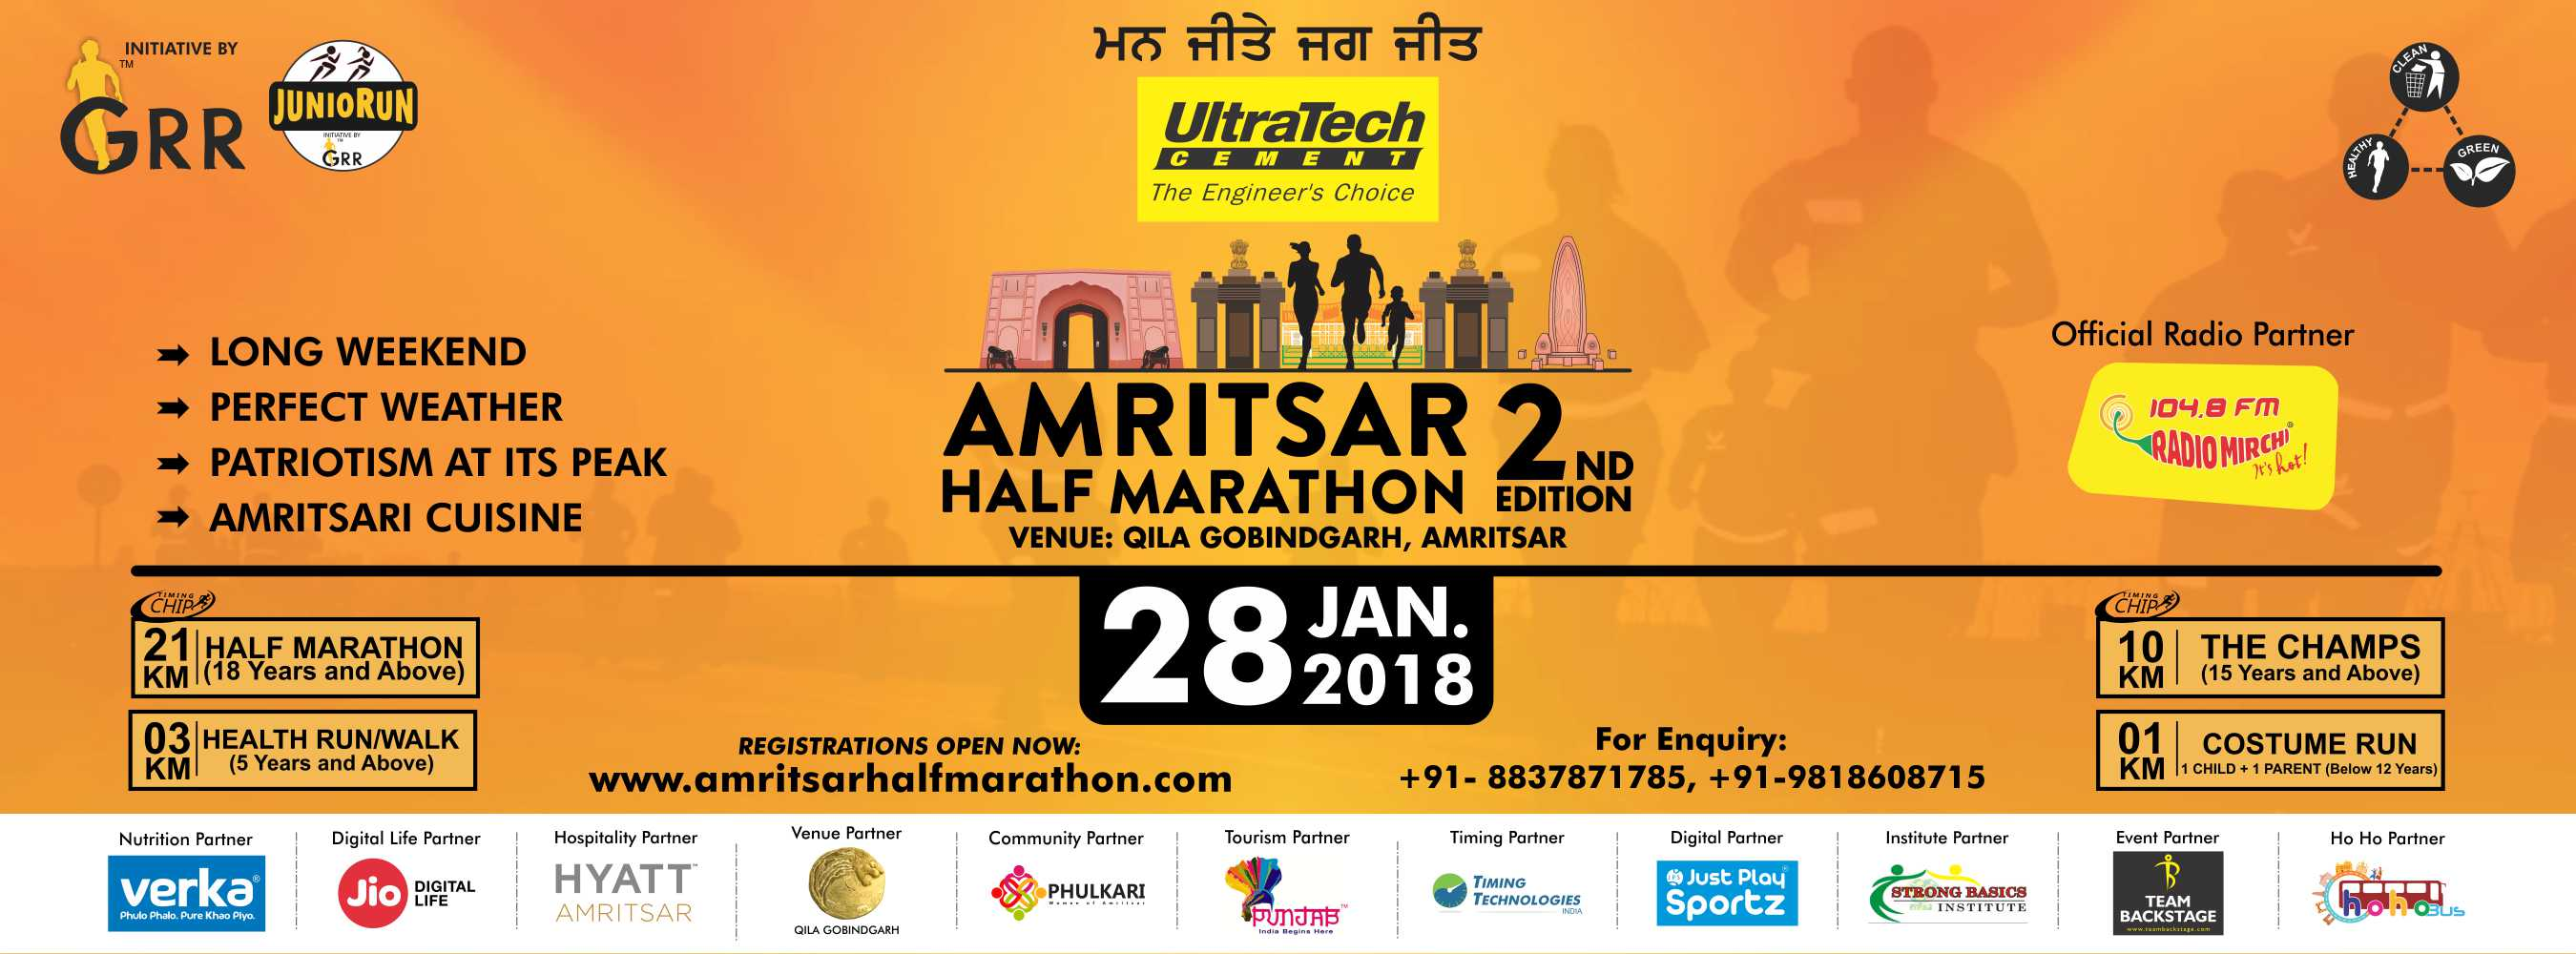 Amritsar Half Marathon organised a Promo Run at LPU